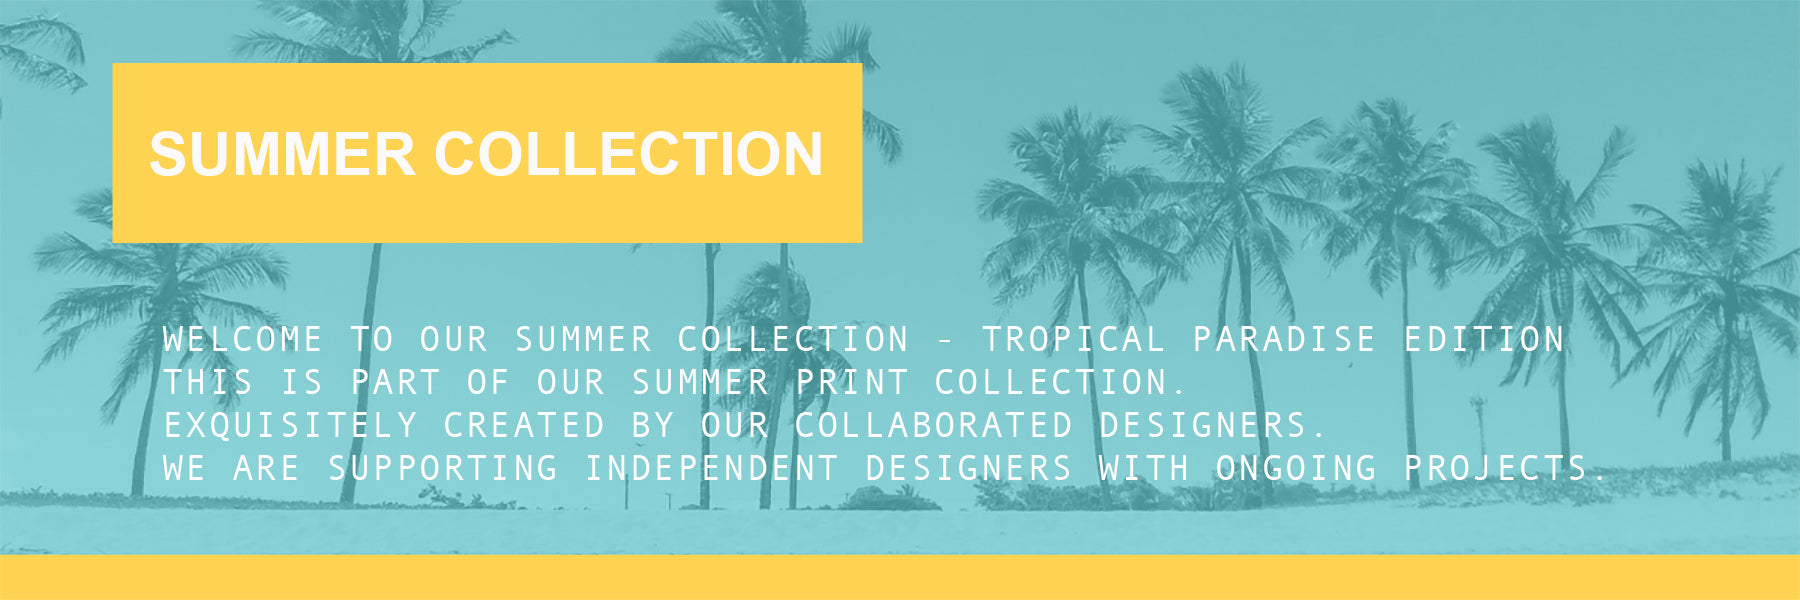 WELCOME TO OUR SUMMER COLLECTION - tropical paradise edition This is part of our summer print collection.  Exquisitely created by our collaborated designers.  We are supporting independent designers with ongoing projects.